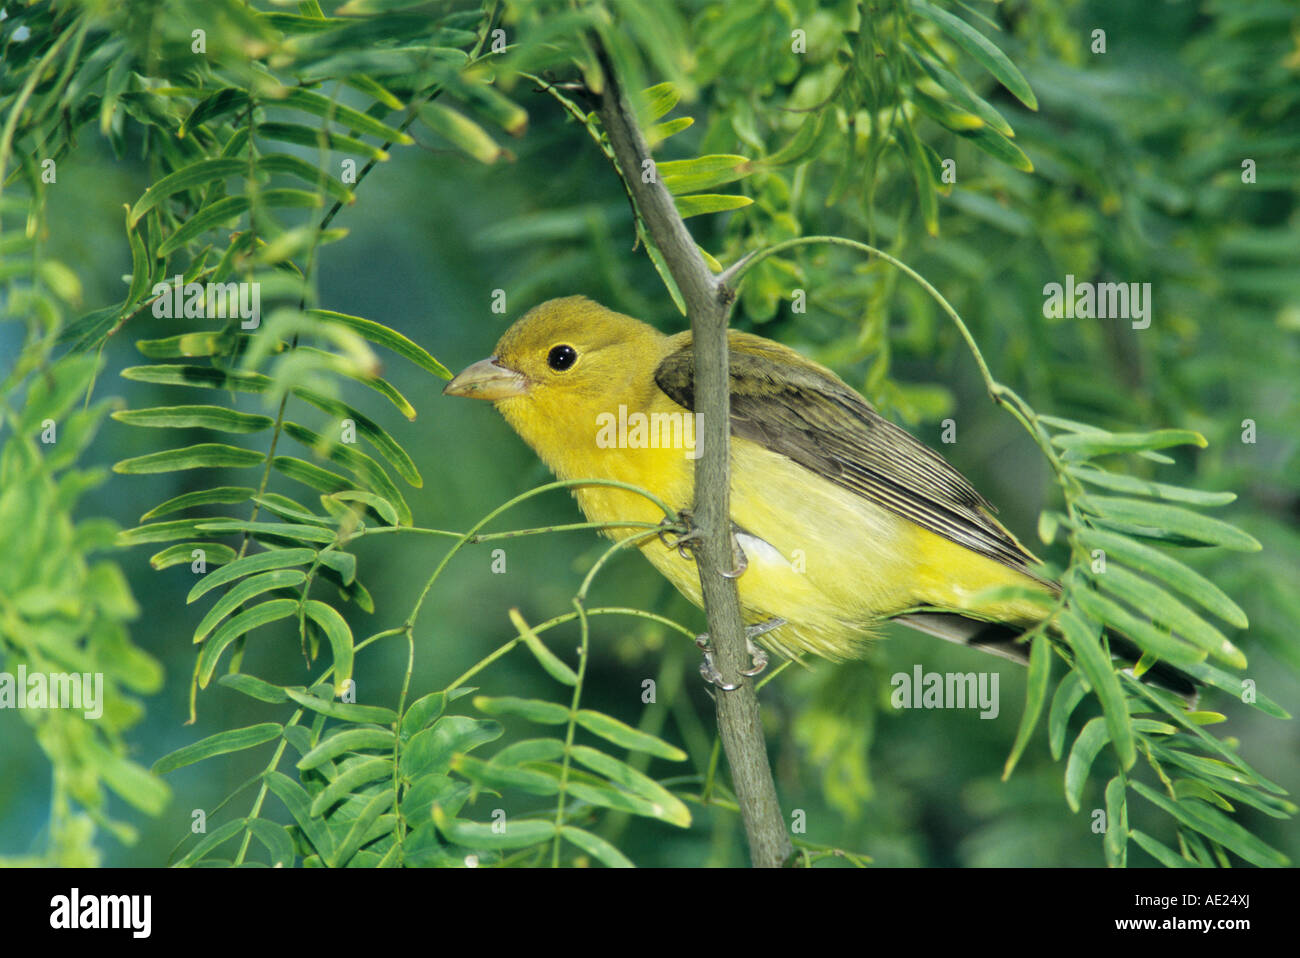 Scarlet Tanager Piranga olivacea female on Mesquite tree South Padre Island Texas USA May 2005 - Stock Image